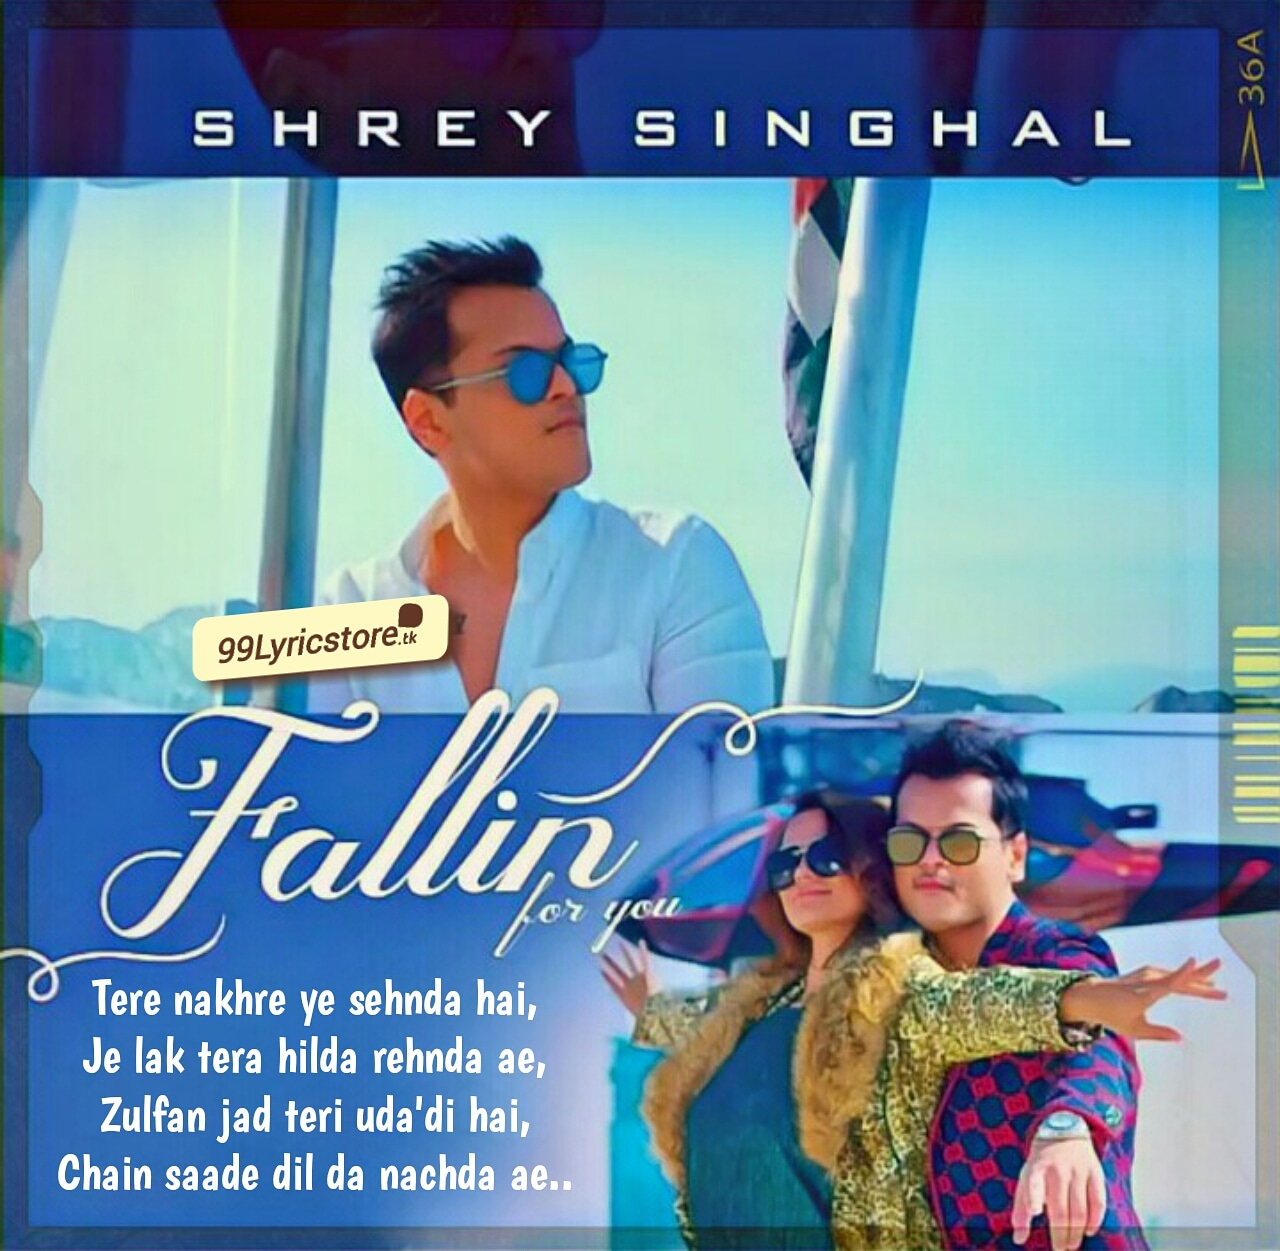 Fallin For You Punjabi Track Sung By Shrey Singhal